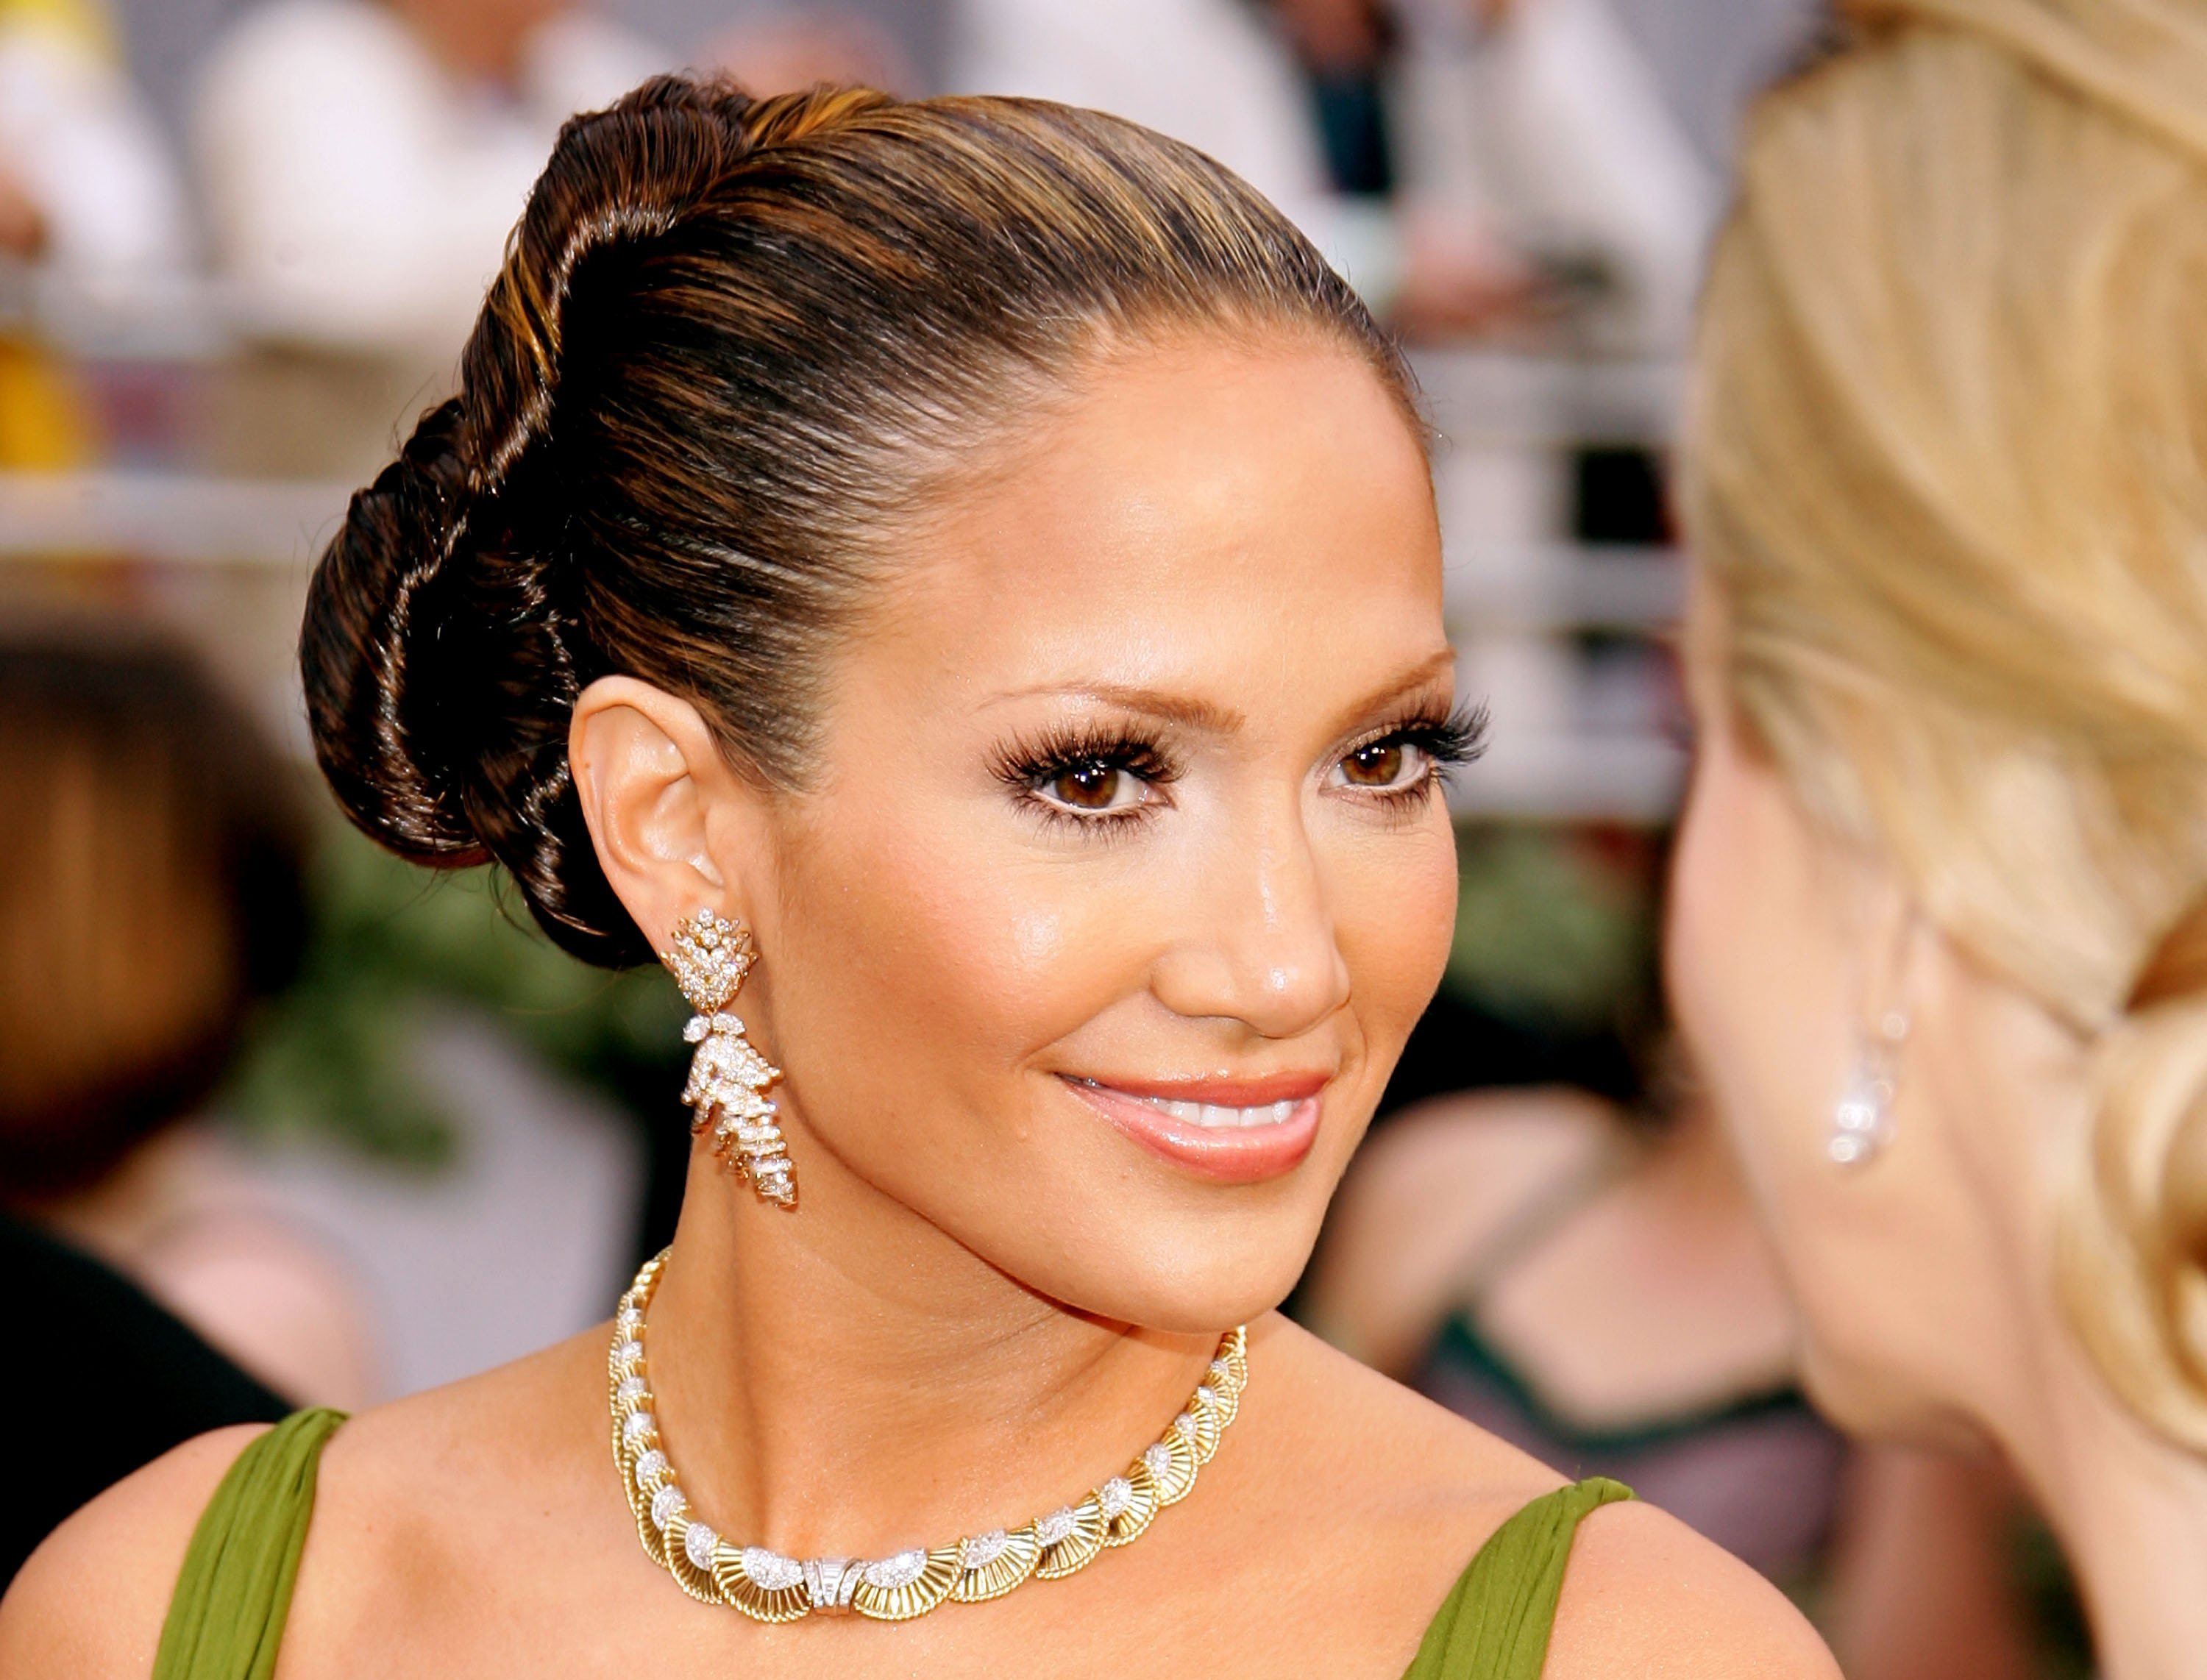 Jennifer Lopez attending the 2006 Academy Awards. | Photo: Getty Images